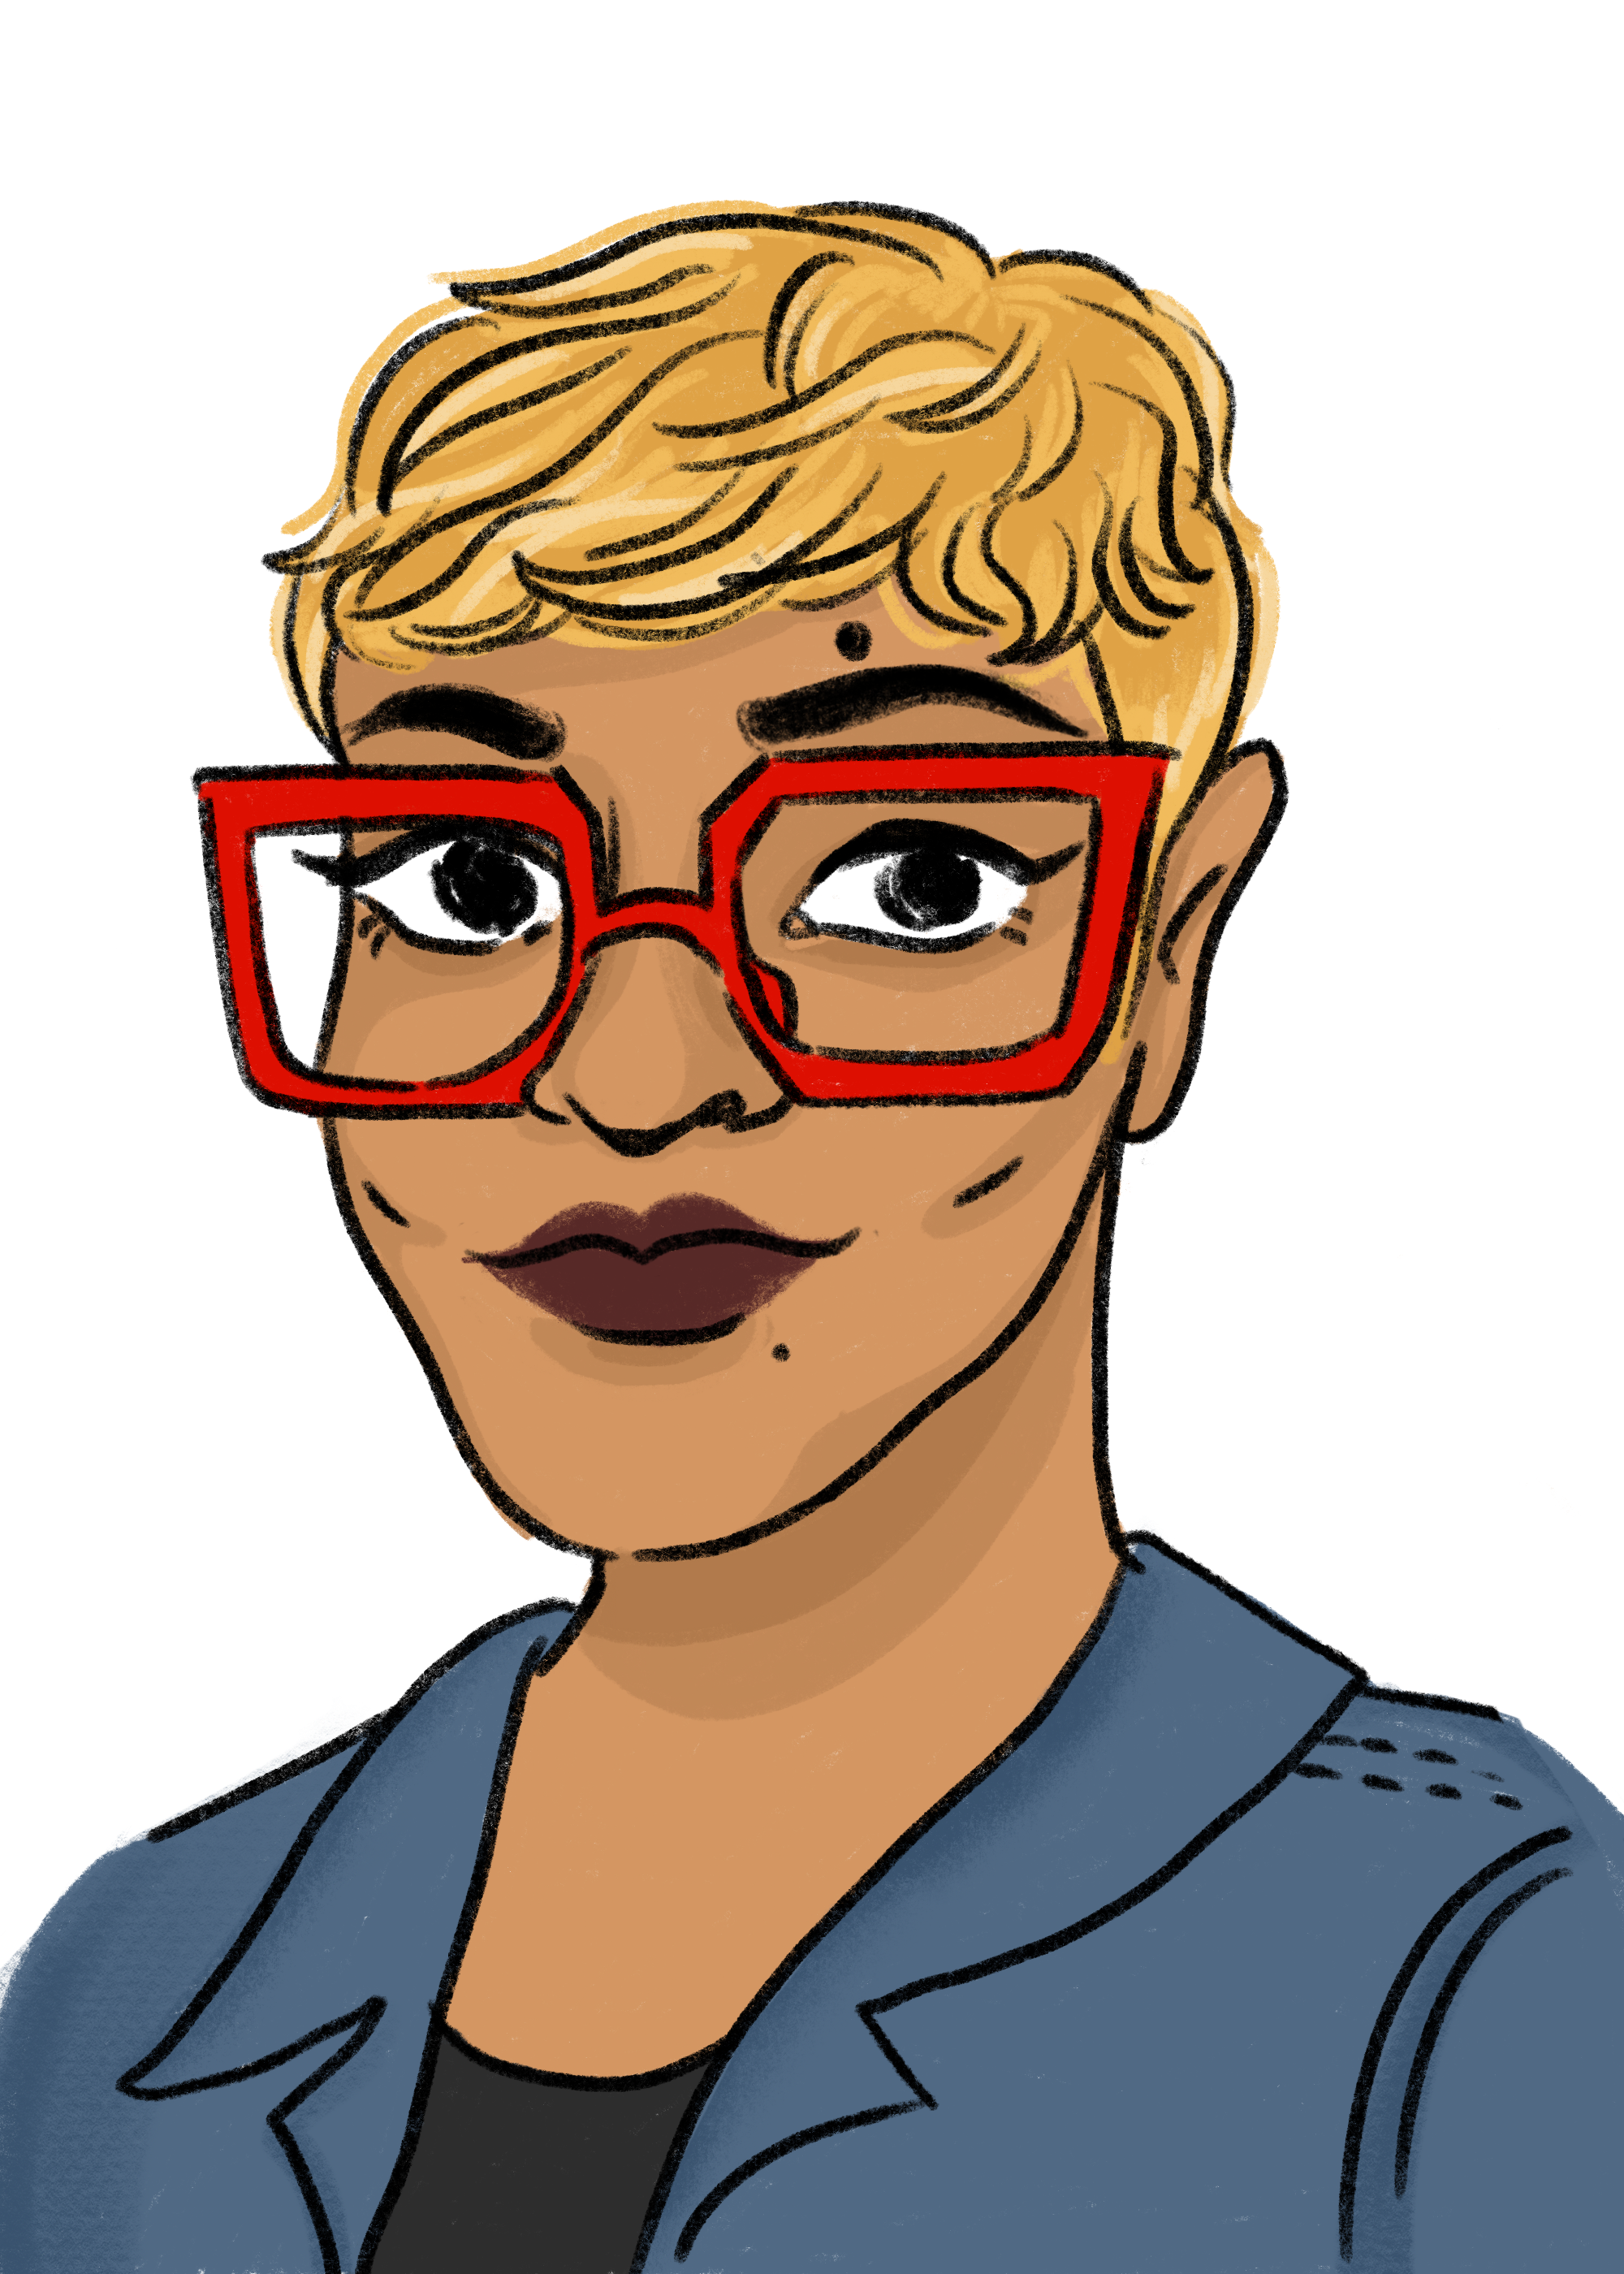 Eve Ewing. Illustration by Clare Austen Smith.